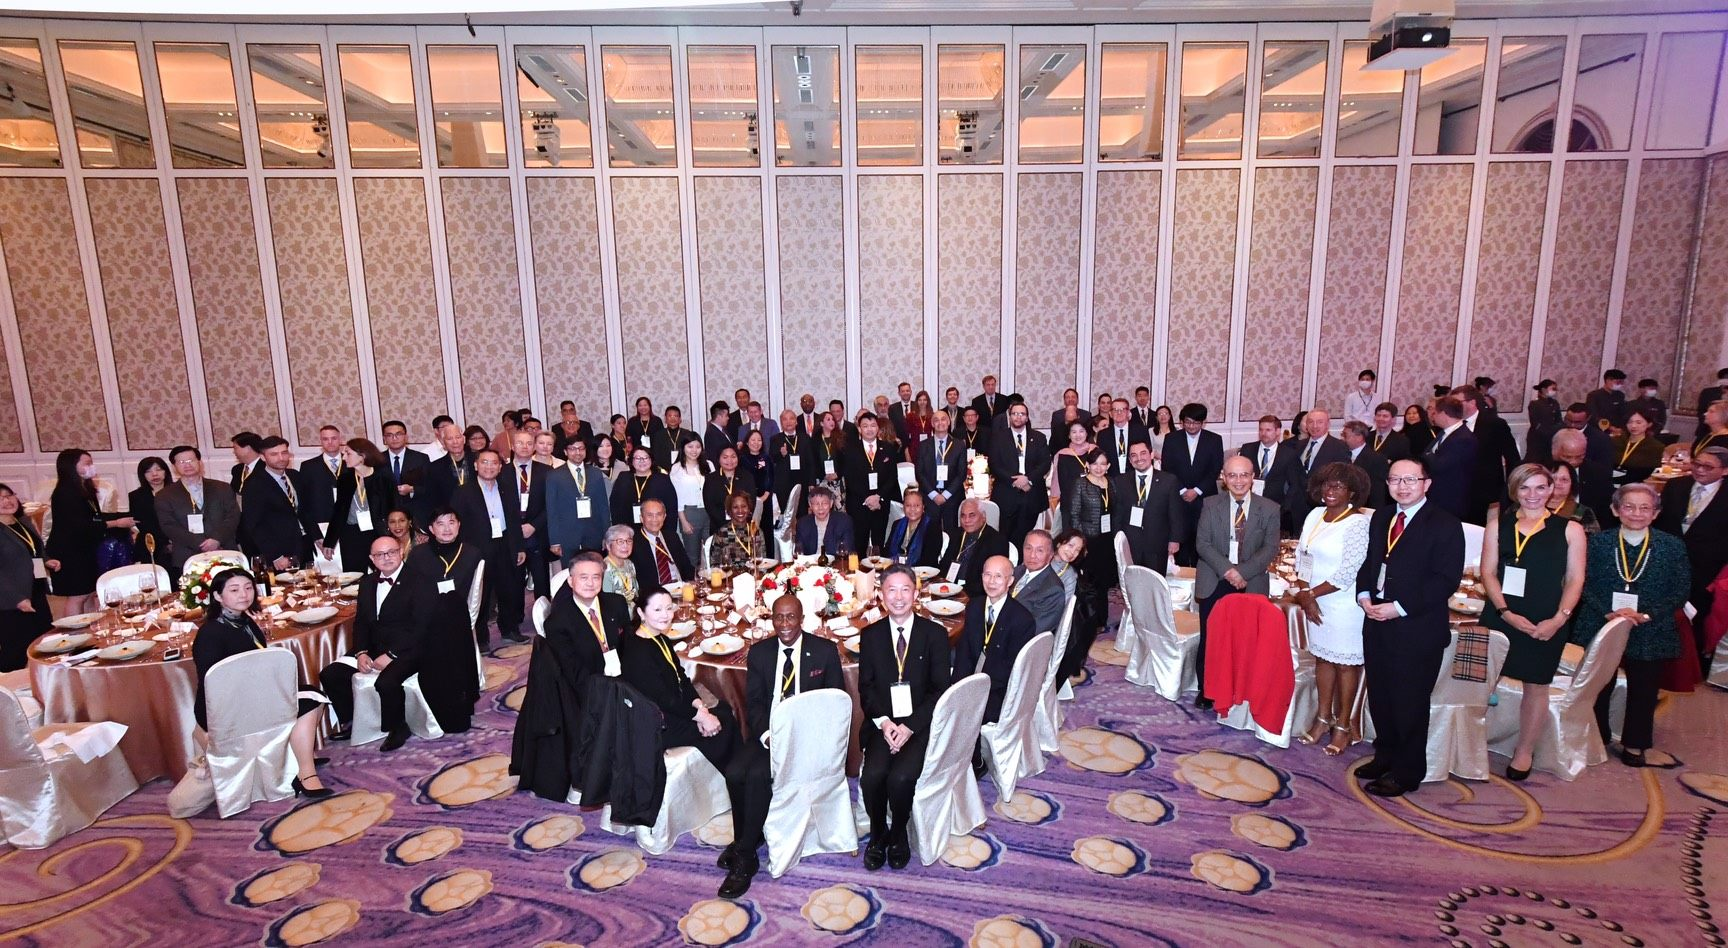 Mayor Ko Hosted a Year-End Appreciation Banquet to Strengthen International Ties